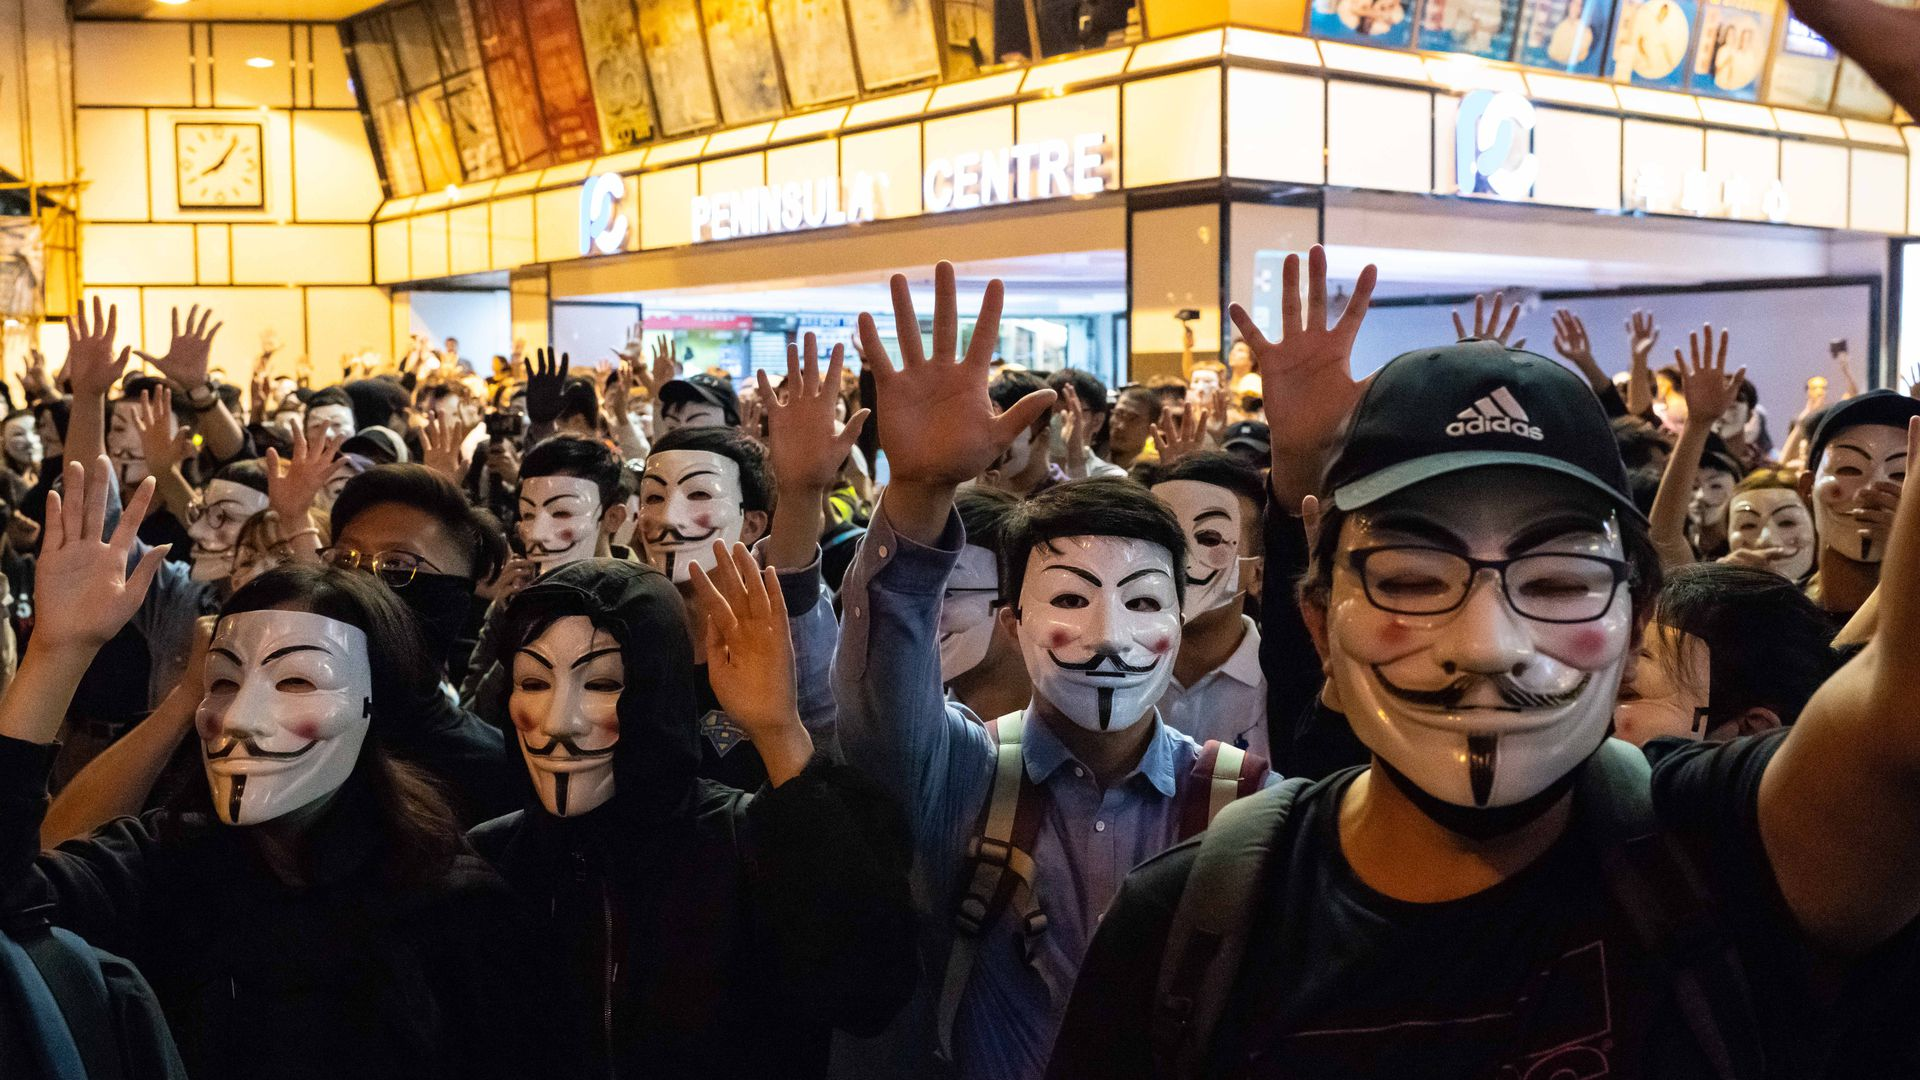 Protestors in Guy Fawkes mask march on November 05, 2019 in Hong Kong